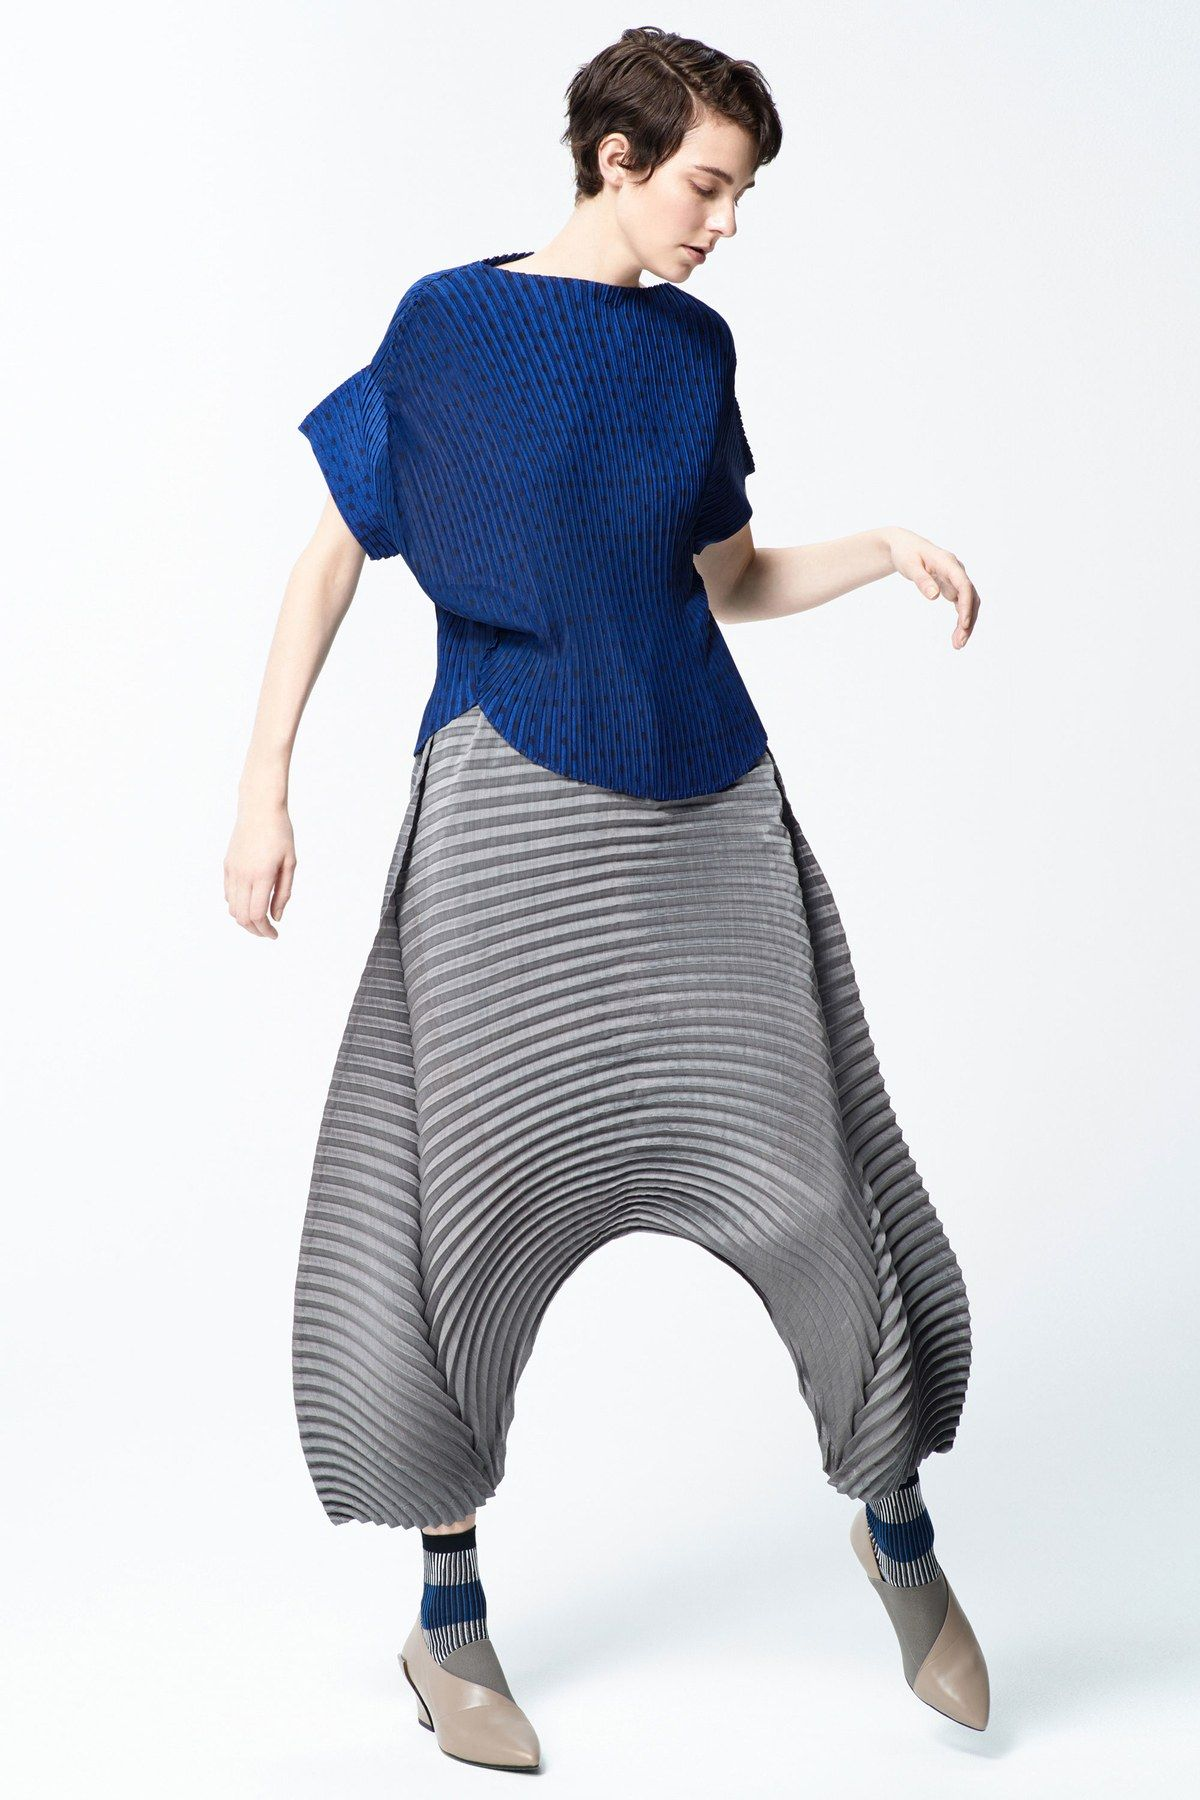 Issey Miyake PreFall 2018 collection, runway looks